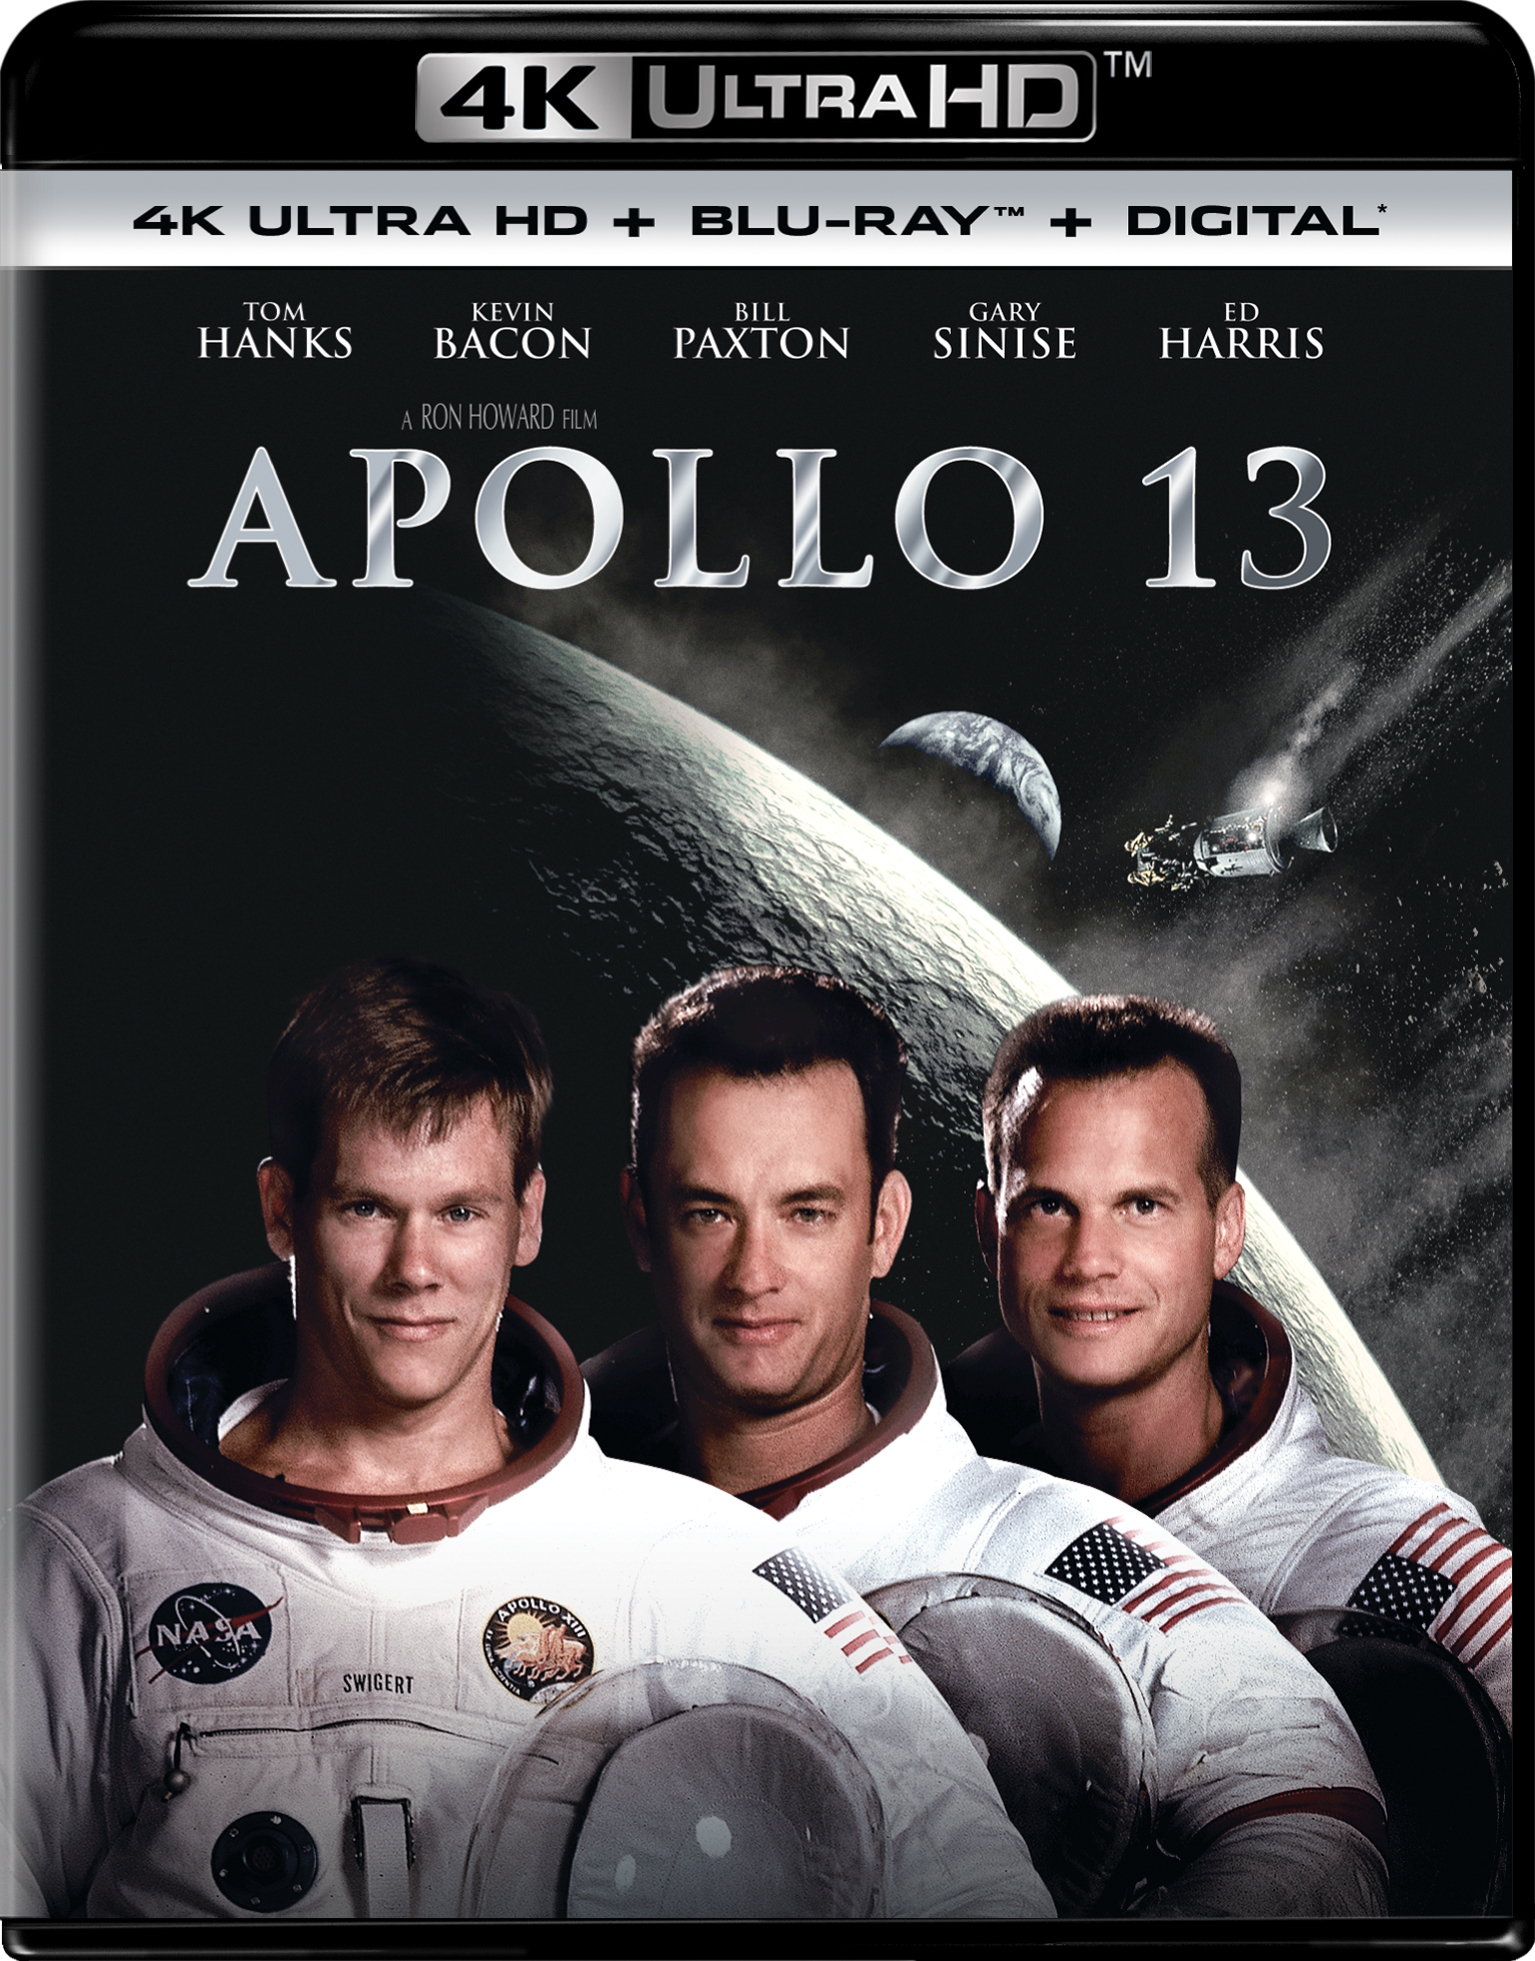 Apollo 13 4K (1995) 4K Ultra HD Blu-ray